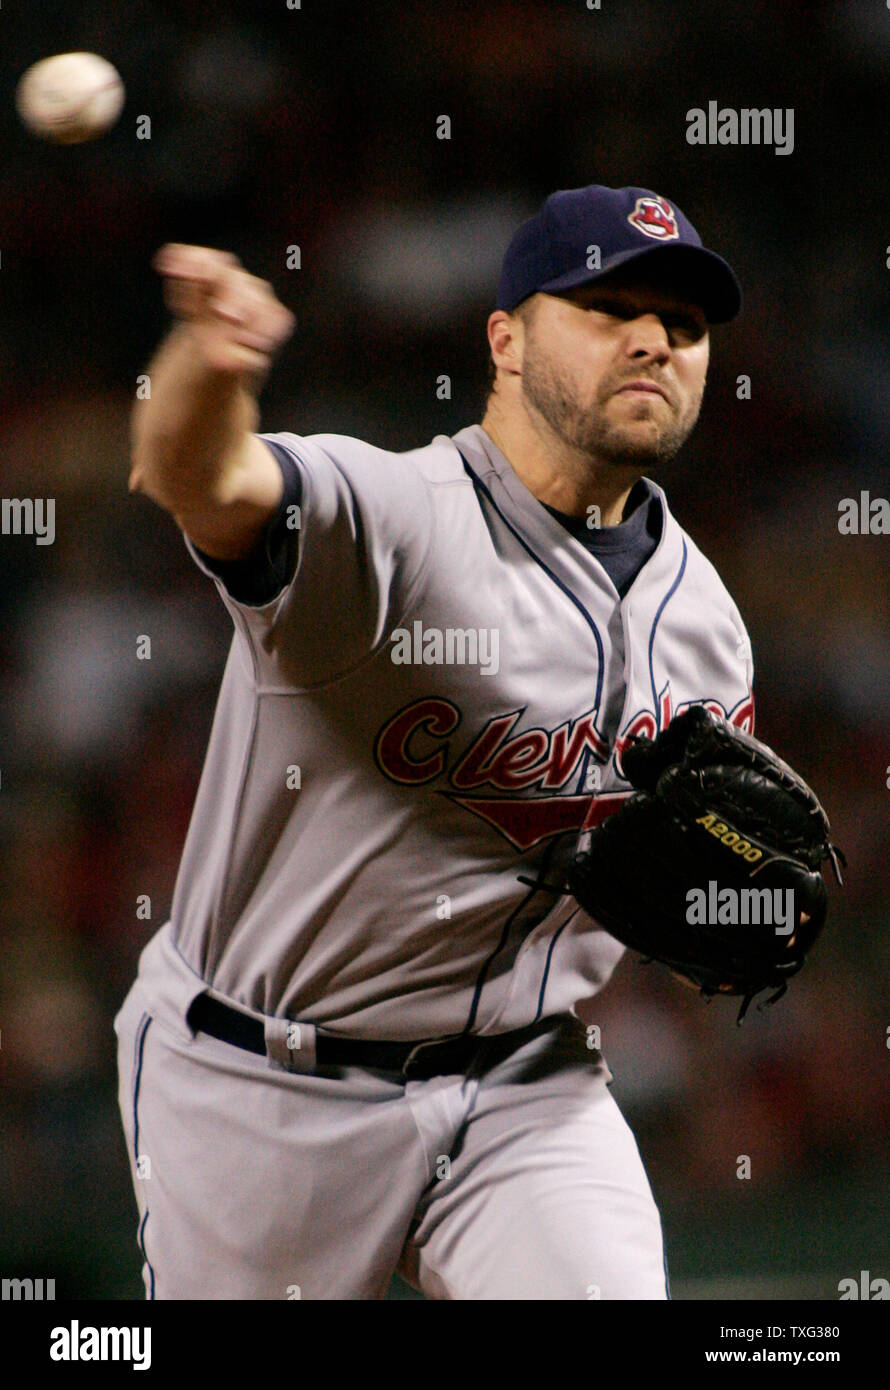 Cleveland Indians starting pitcher Jake Westbrook throws a pitch in the first inning of game seven of the American League Championship Series against the Boston Red Sox at Fenway Park in Boston on October 20, 2007. (UPI Photo/Matthew Healey) Stock Photo